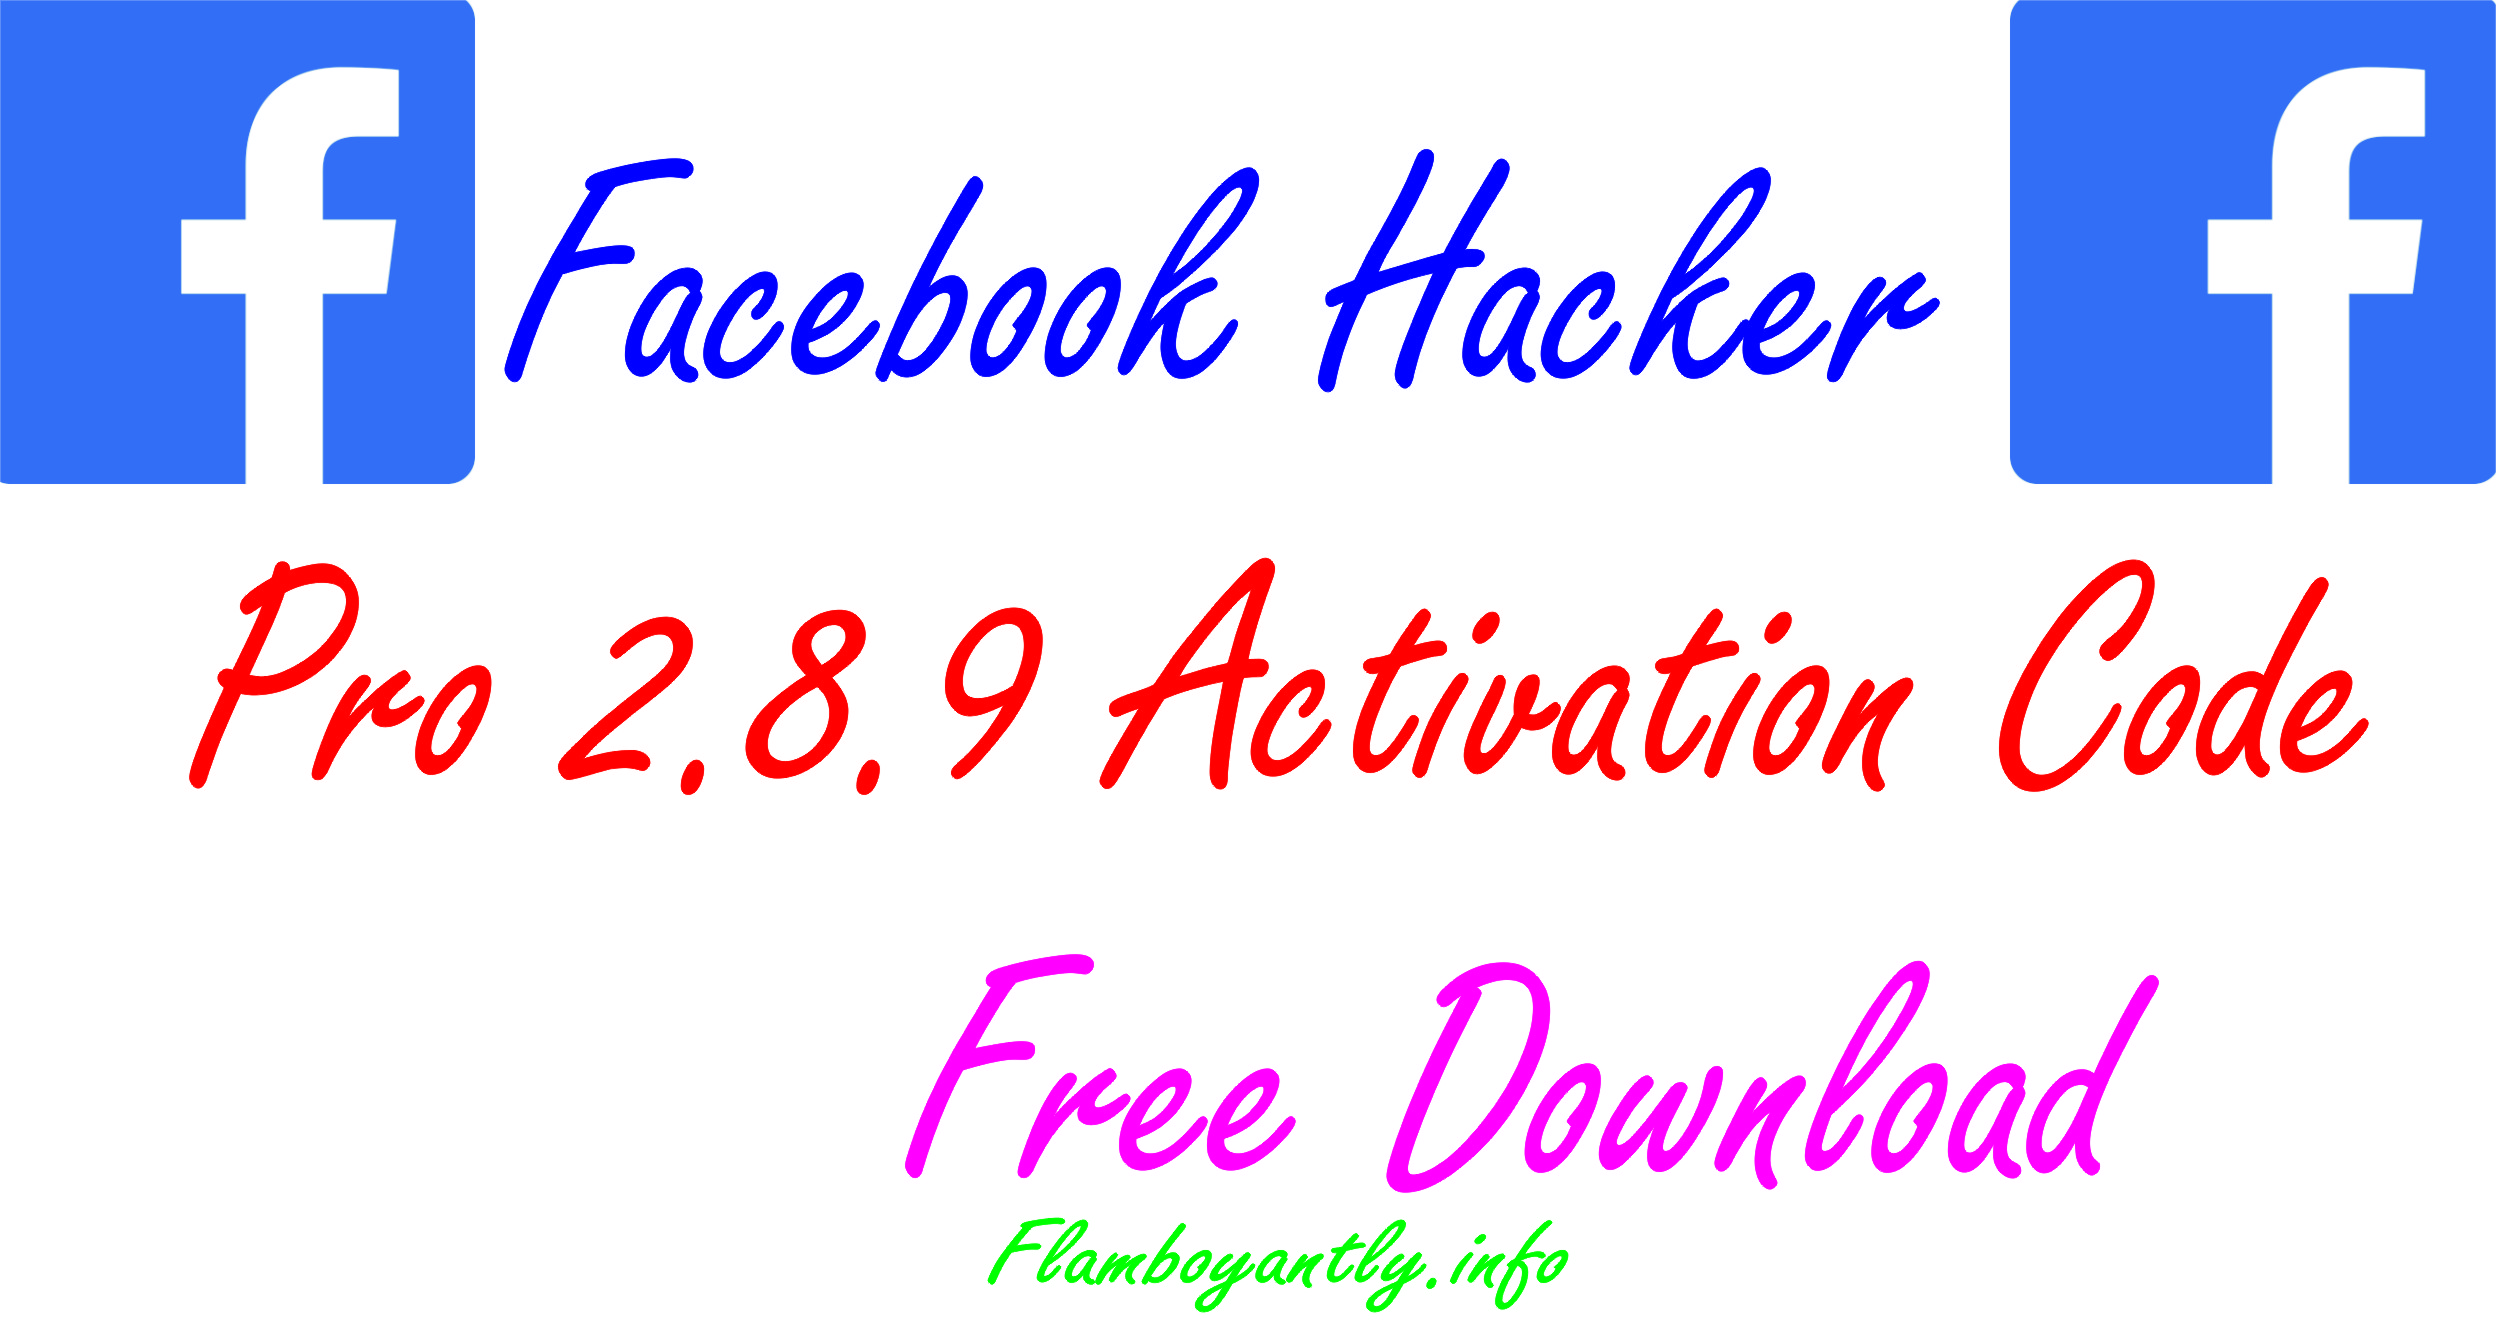 Facebook Hacker Pro 2.8.9 Activation Code Free Download